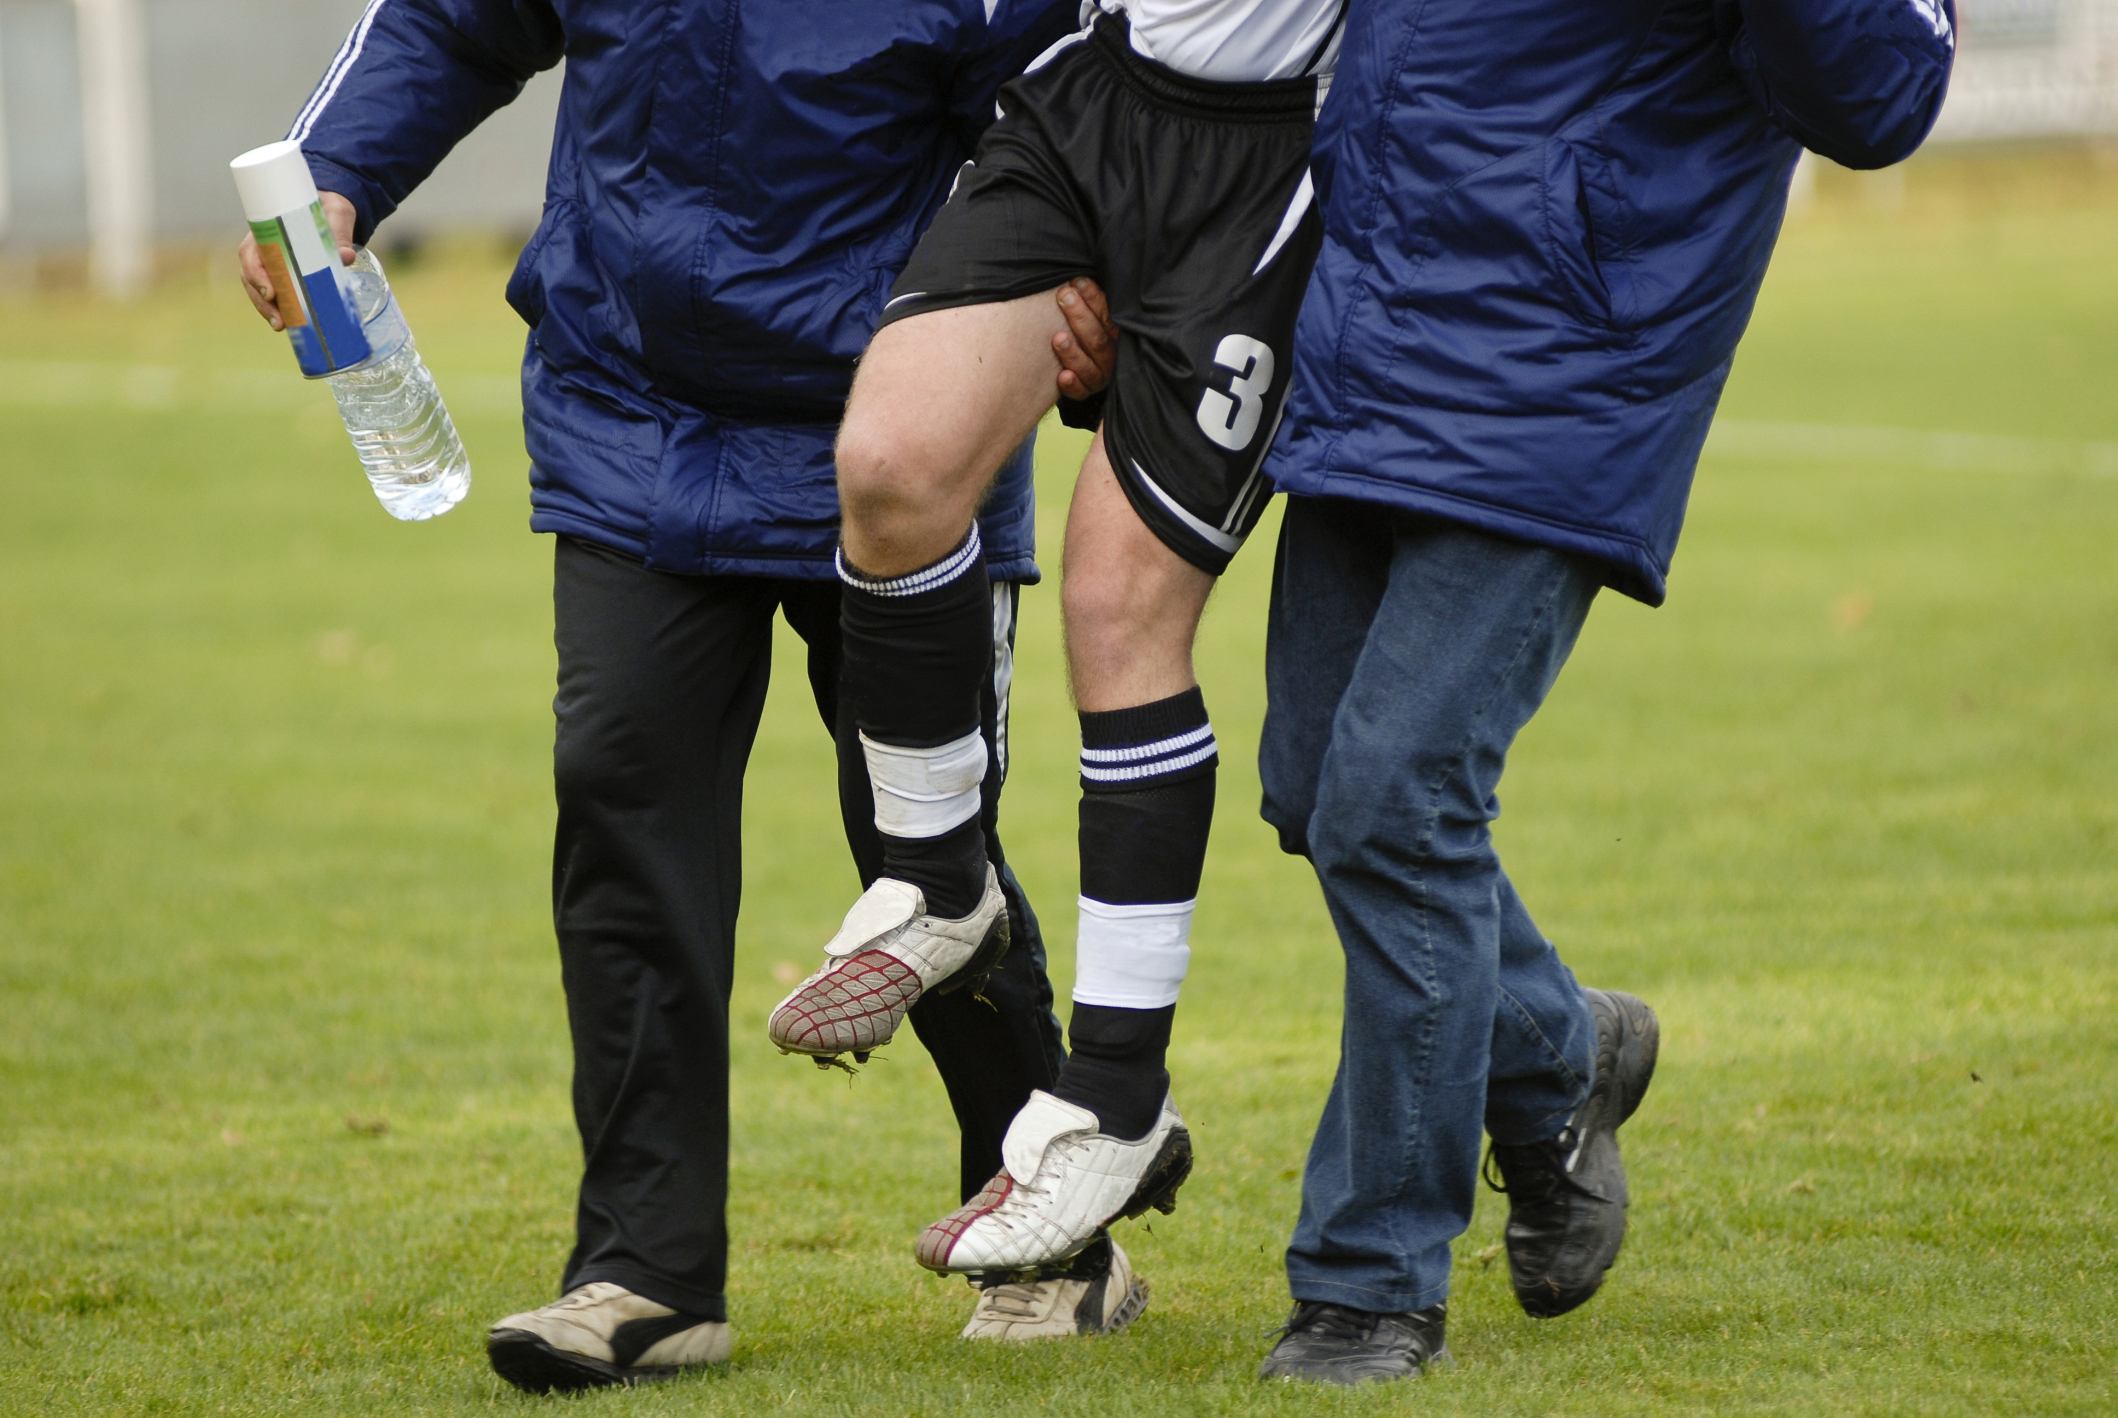 a personal story on the soccer injury The personal stories of those affected by concussions and seeking to raise concussion awareness now he's sharing his story through poetry view more my.